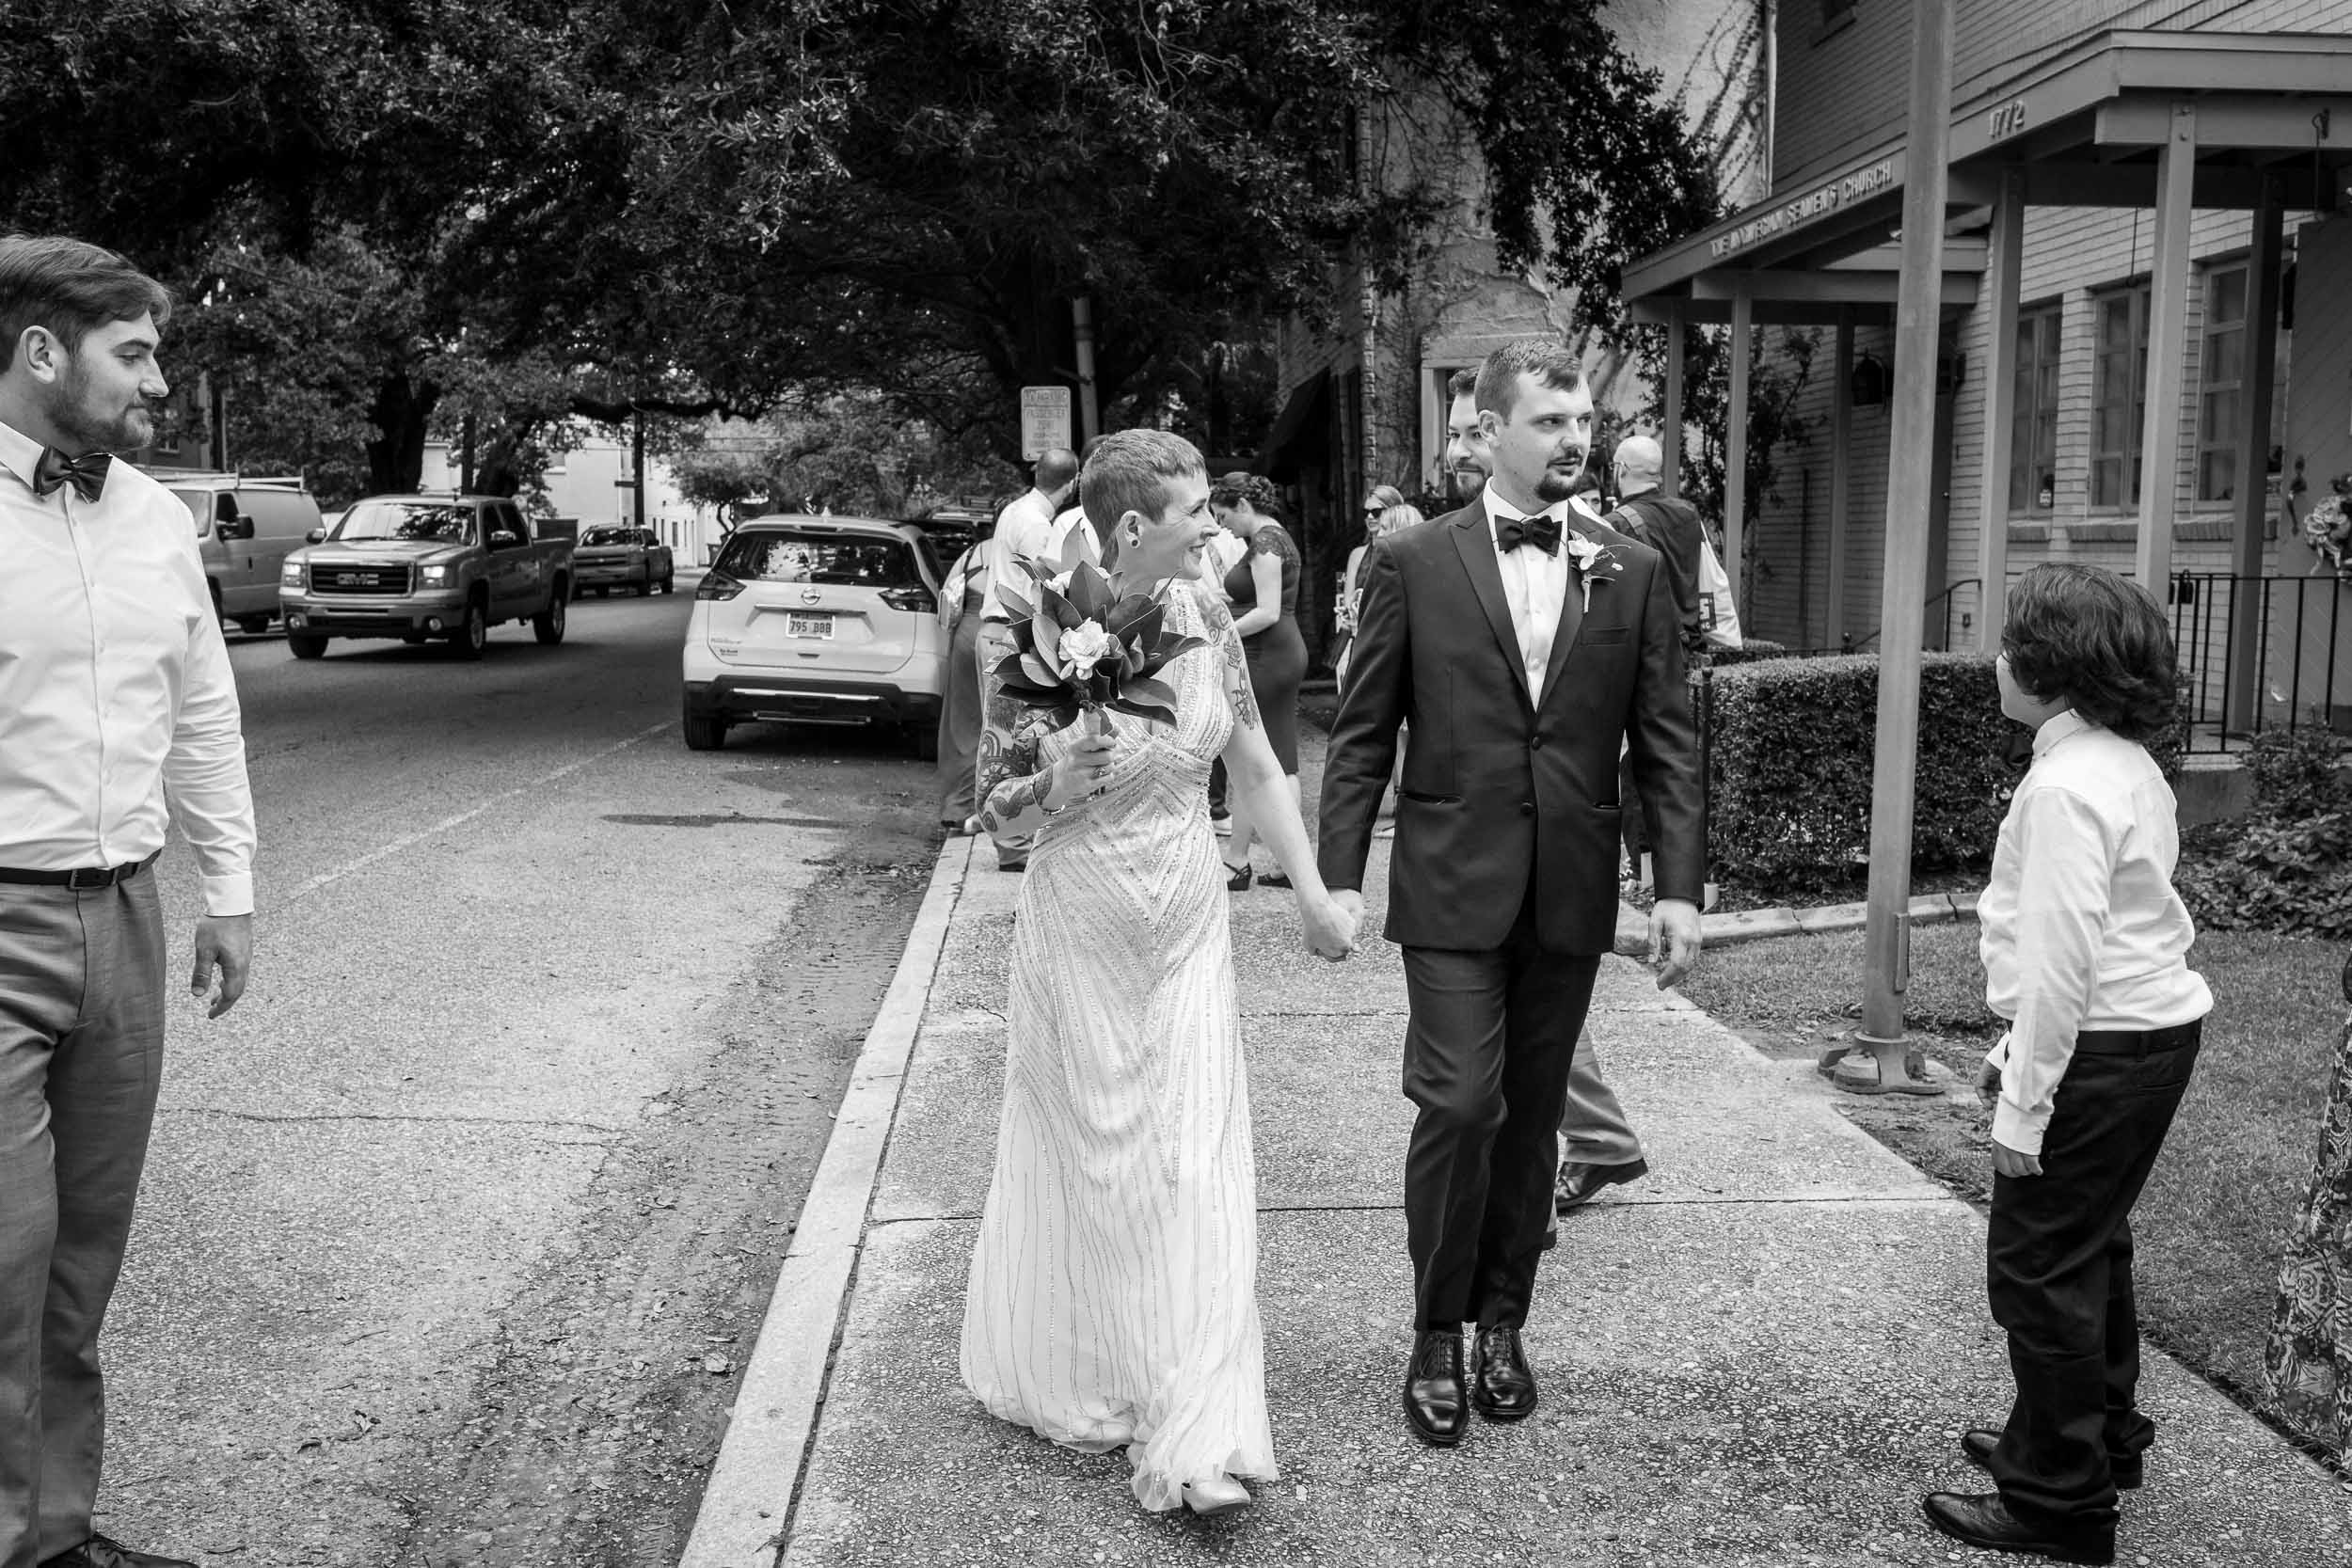 julie-verlinden-wedding-photography-IMG_6927.jpg